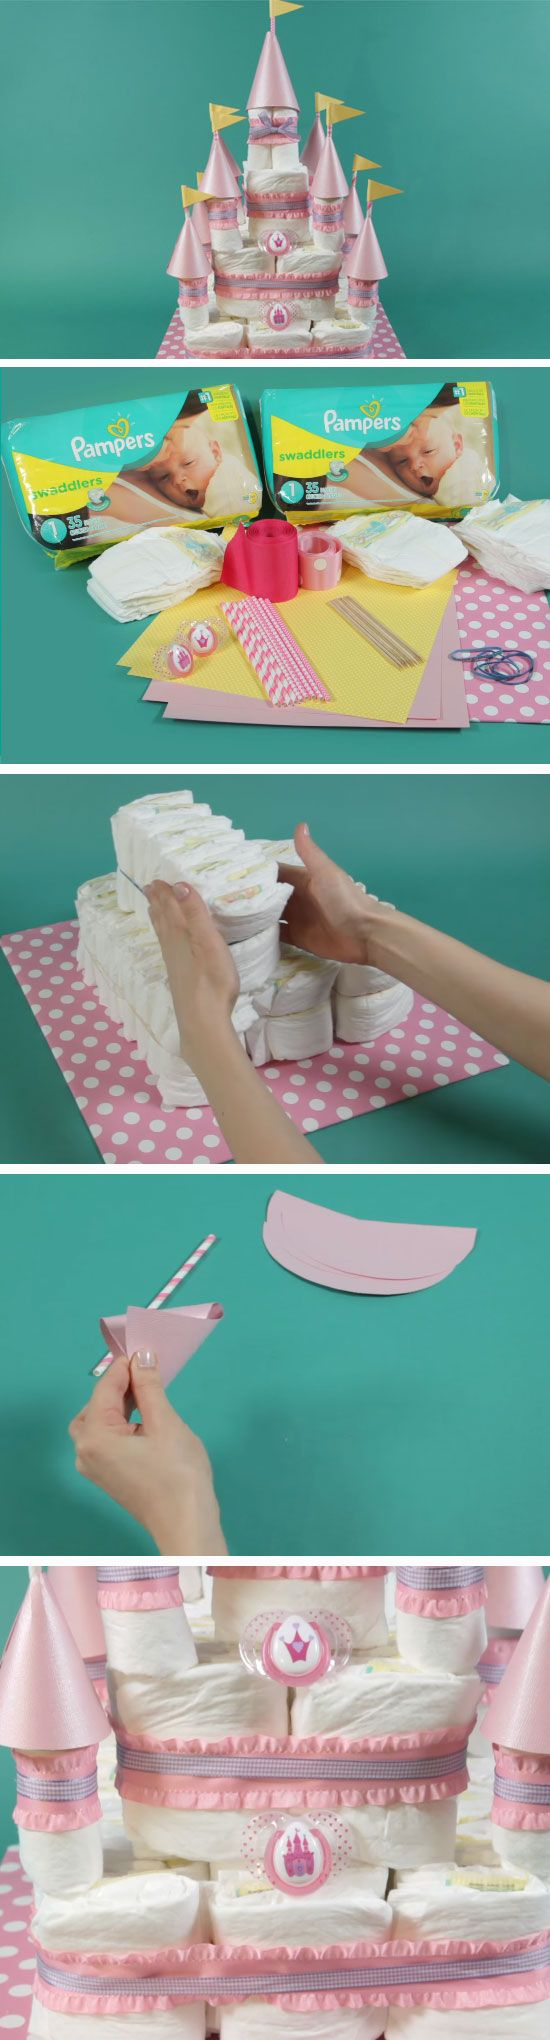 Castle Diaper Cake | DIY Baby Shower Ideas for a Girl